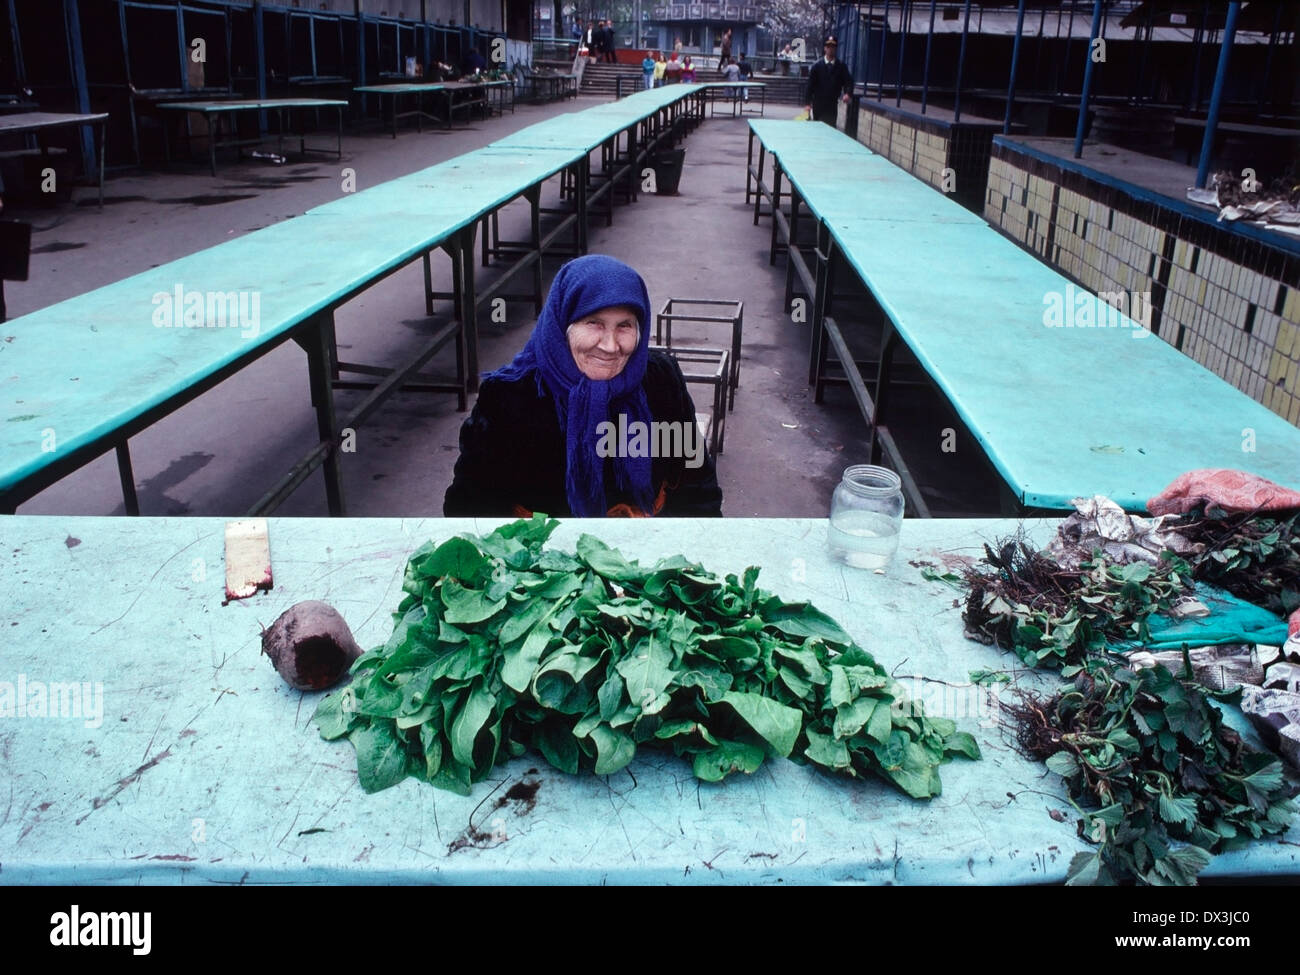 Old woman in market selling produce that she has grown herself in Kiev, the capital of the Soviet Ukraine. - Stock Image